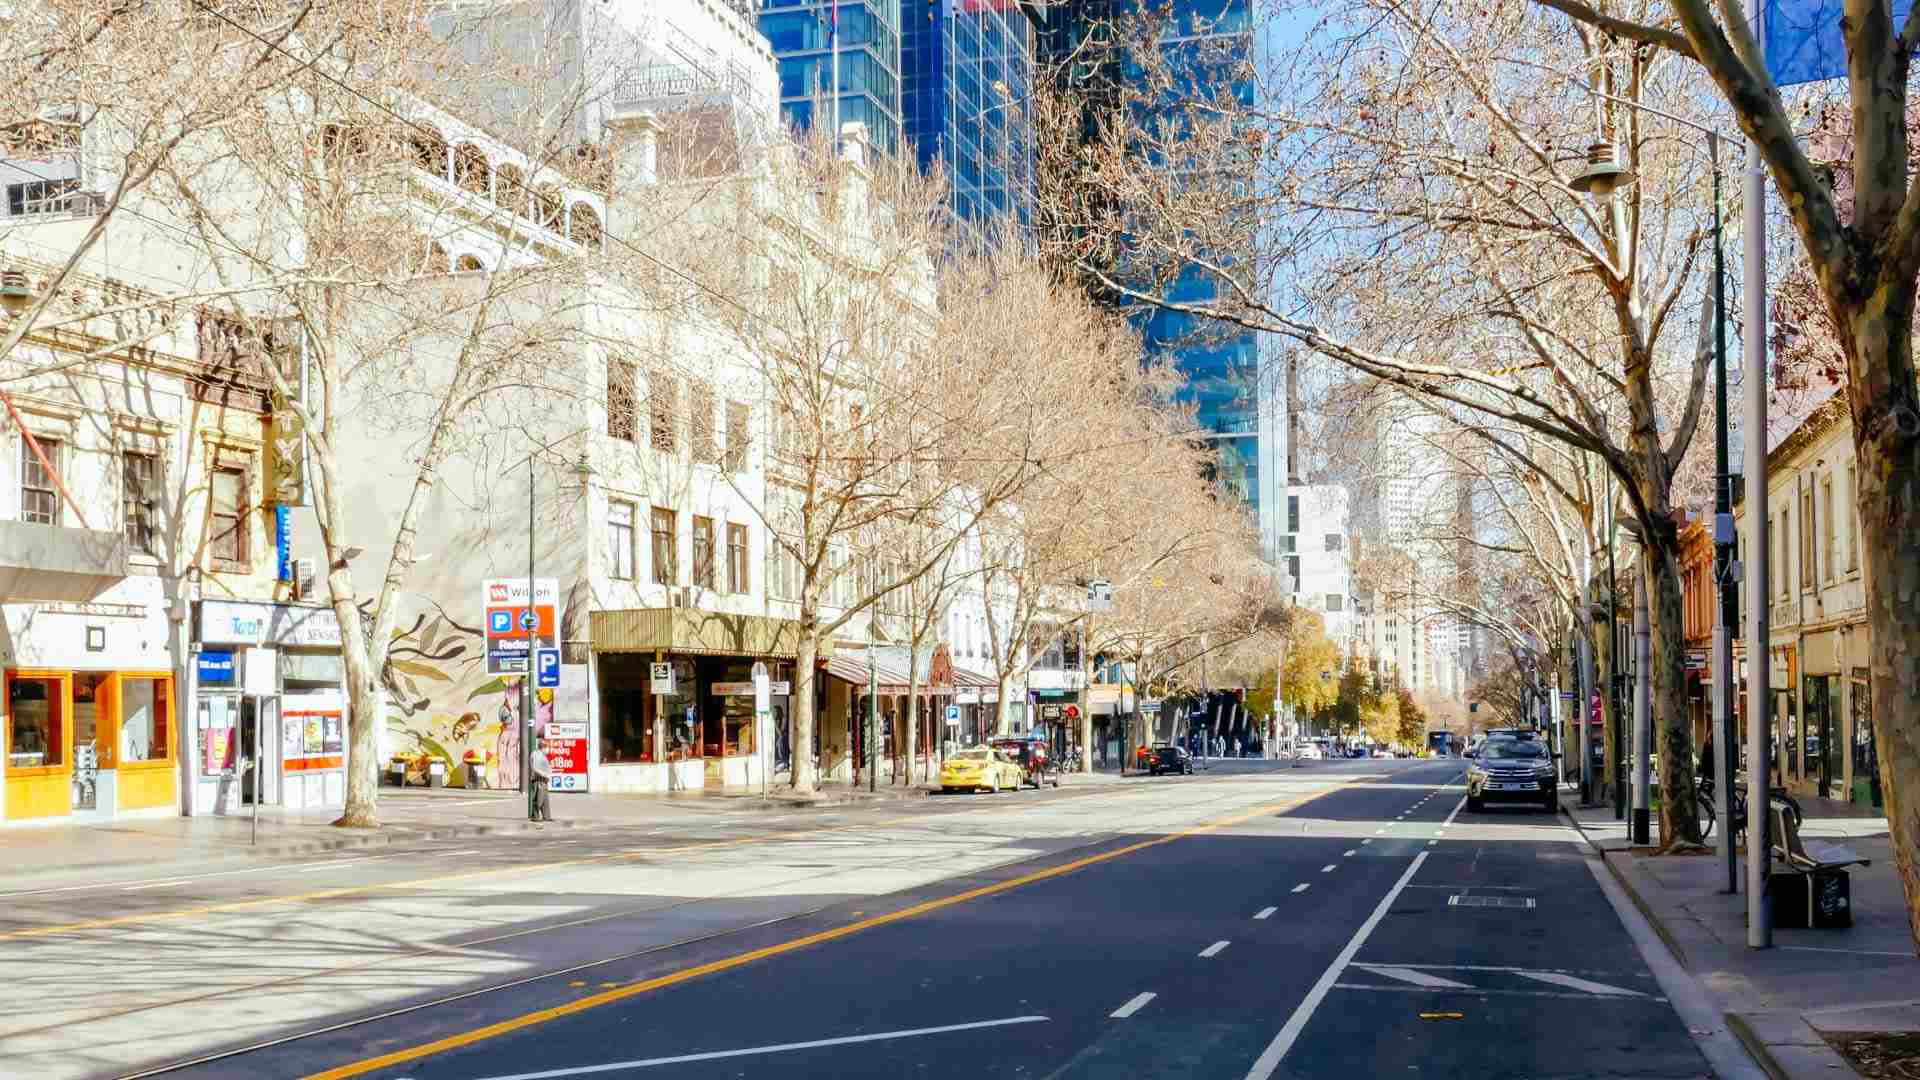 The rippling effects of Victoria's lengthened lockdown